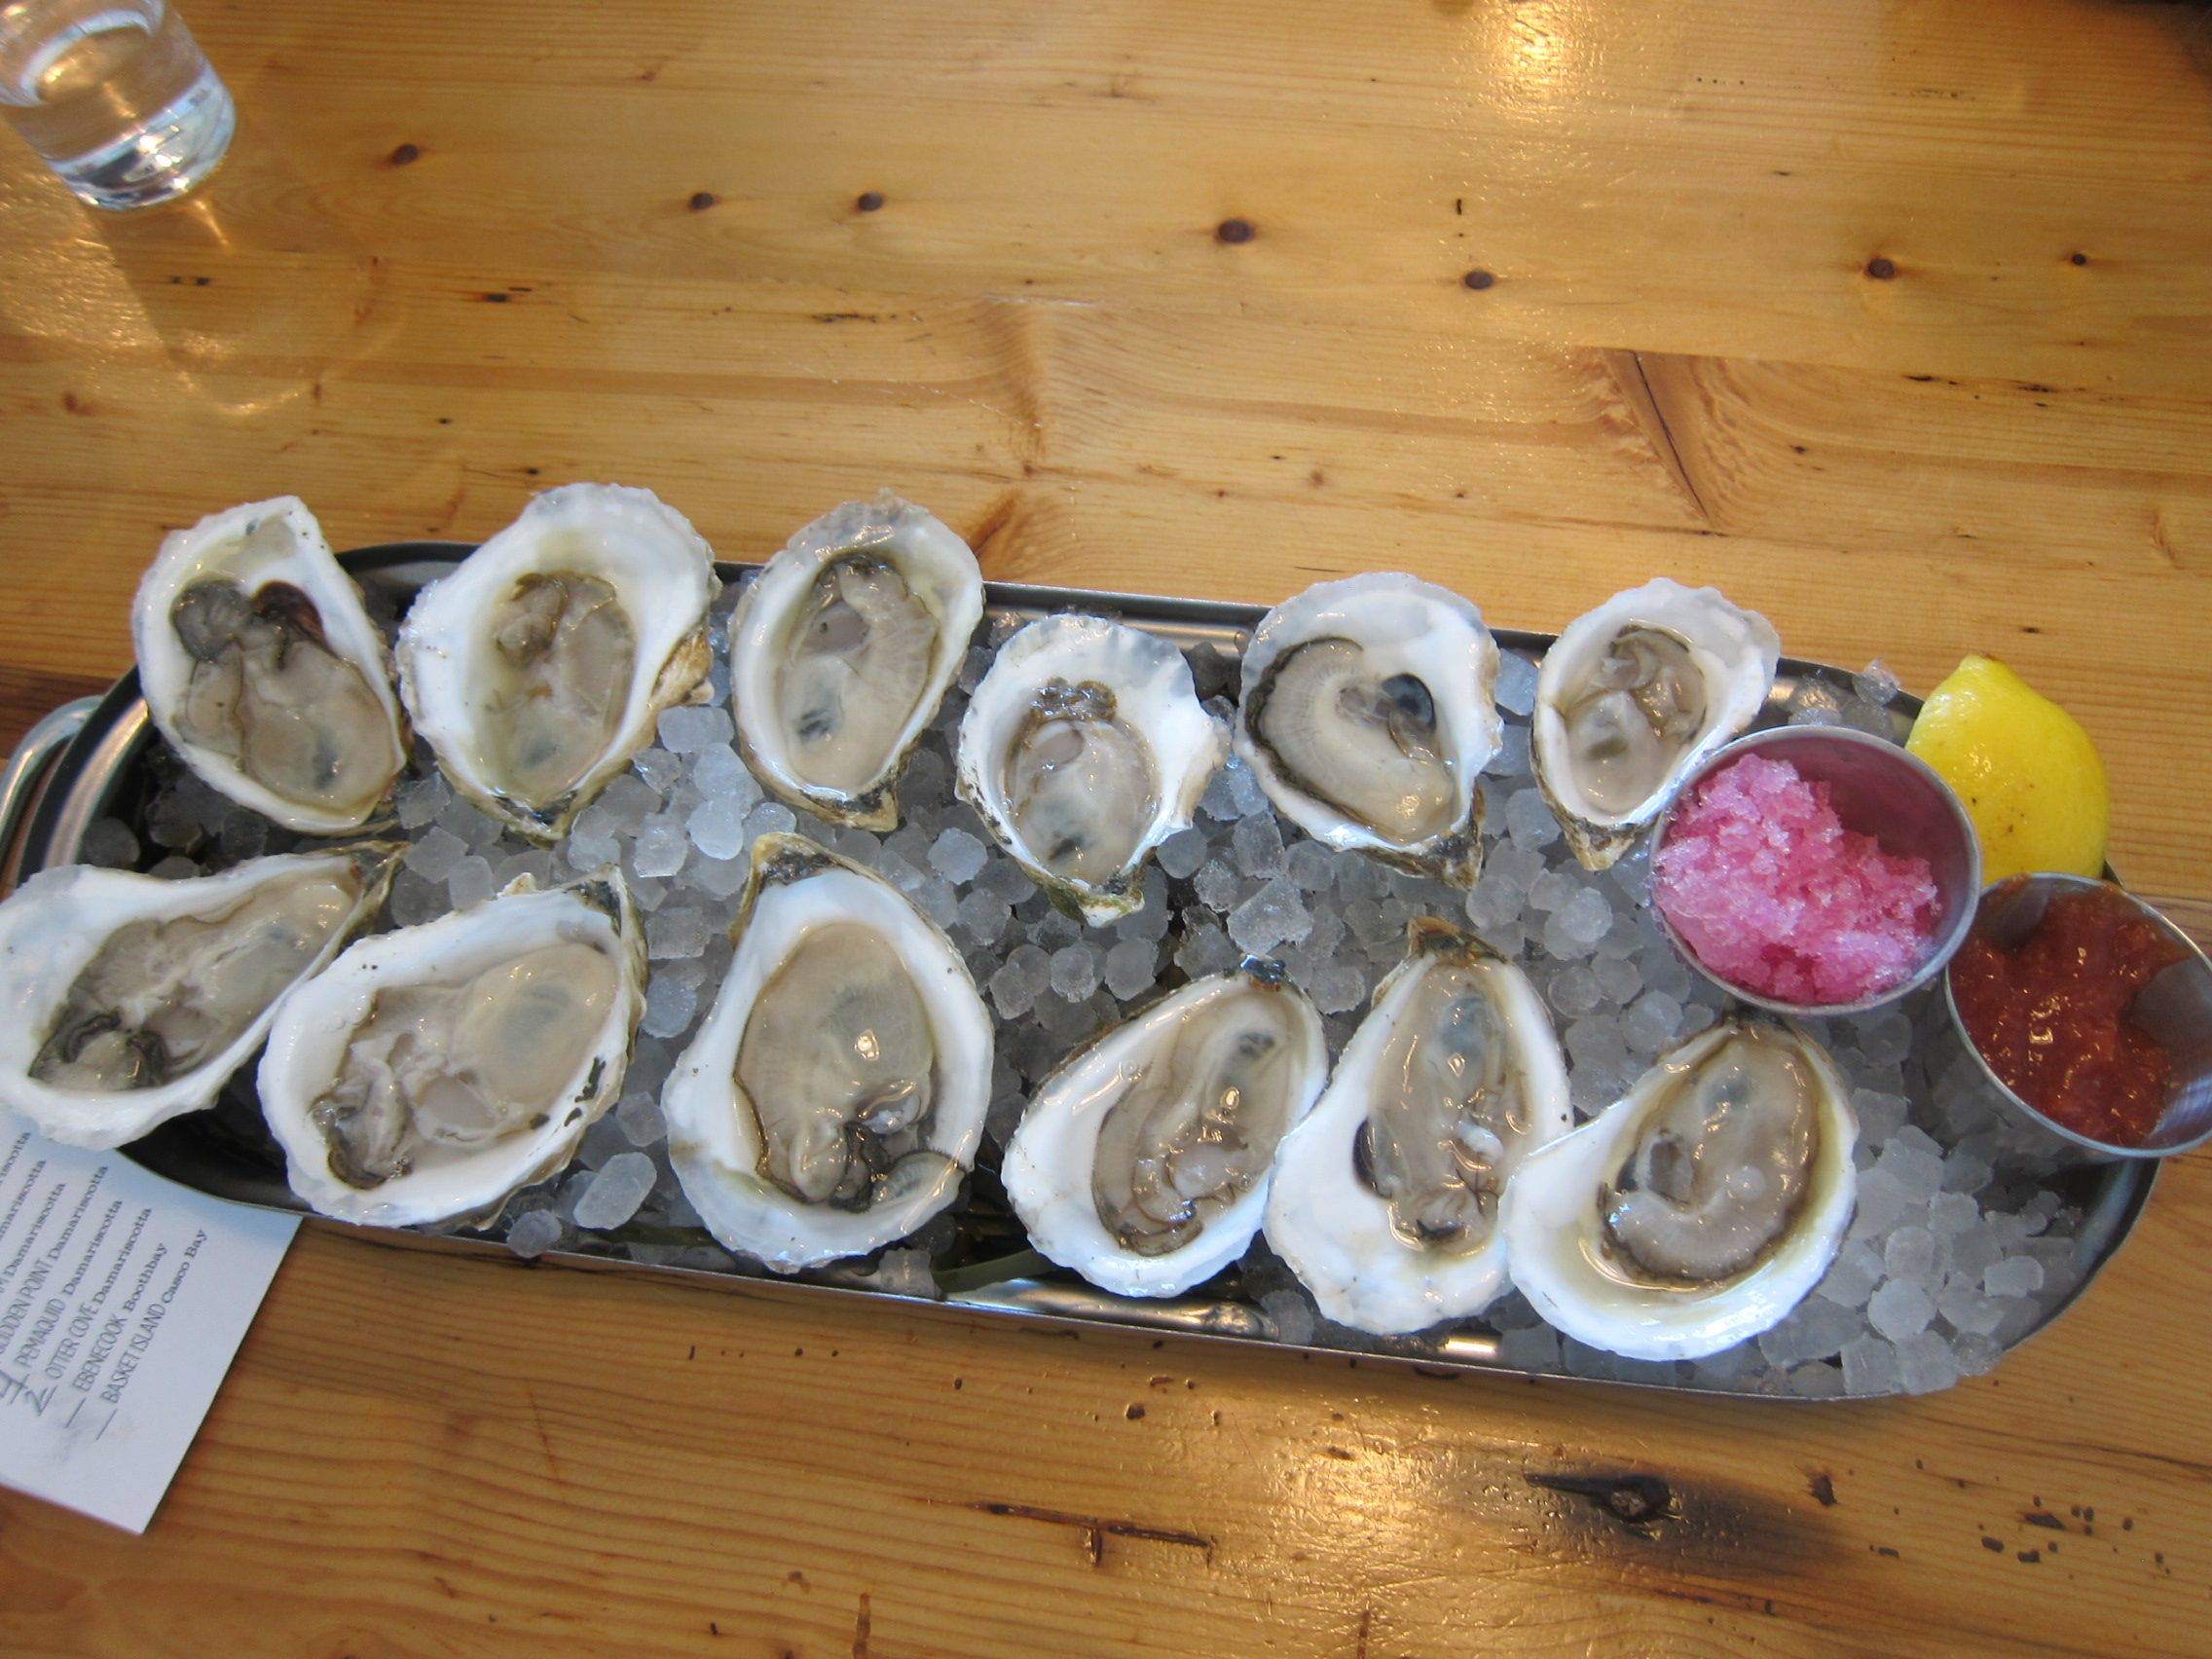 Eventide has some of the best oysters Maine has to offer